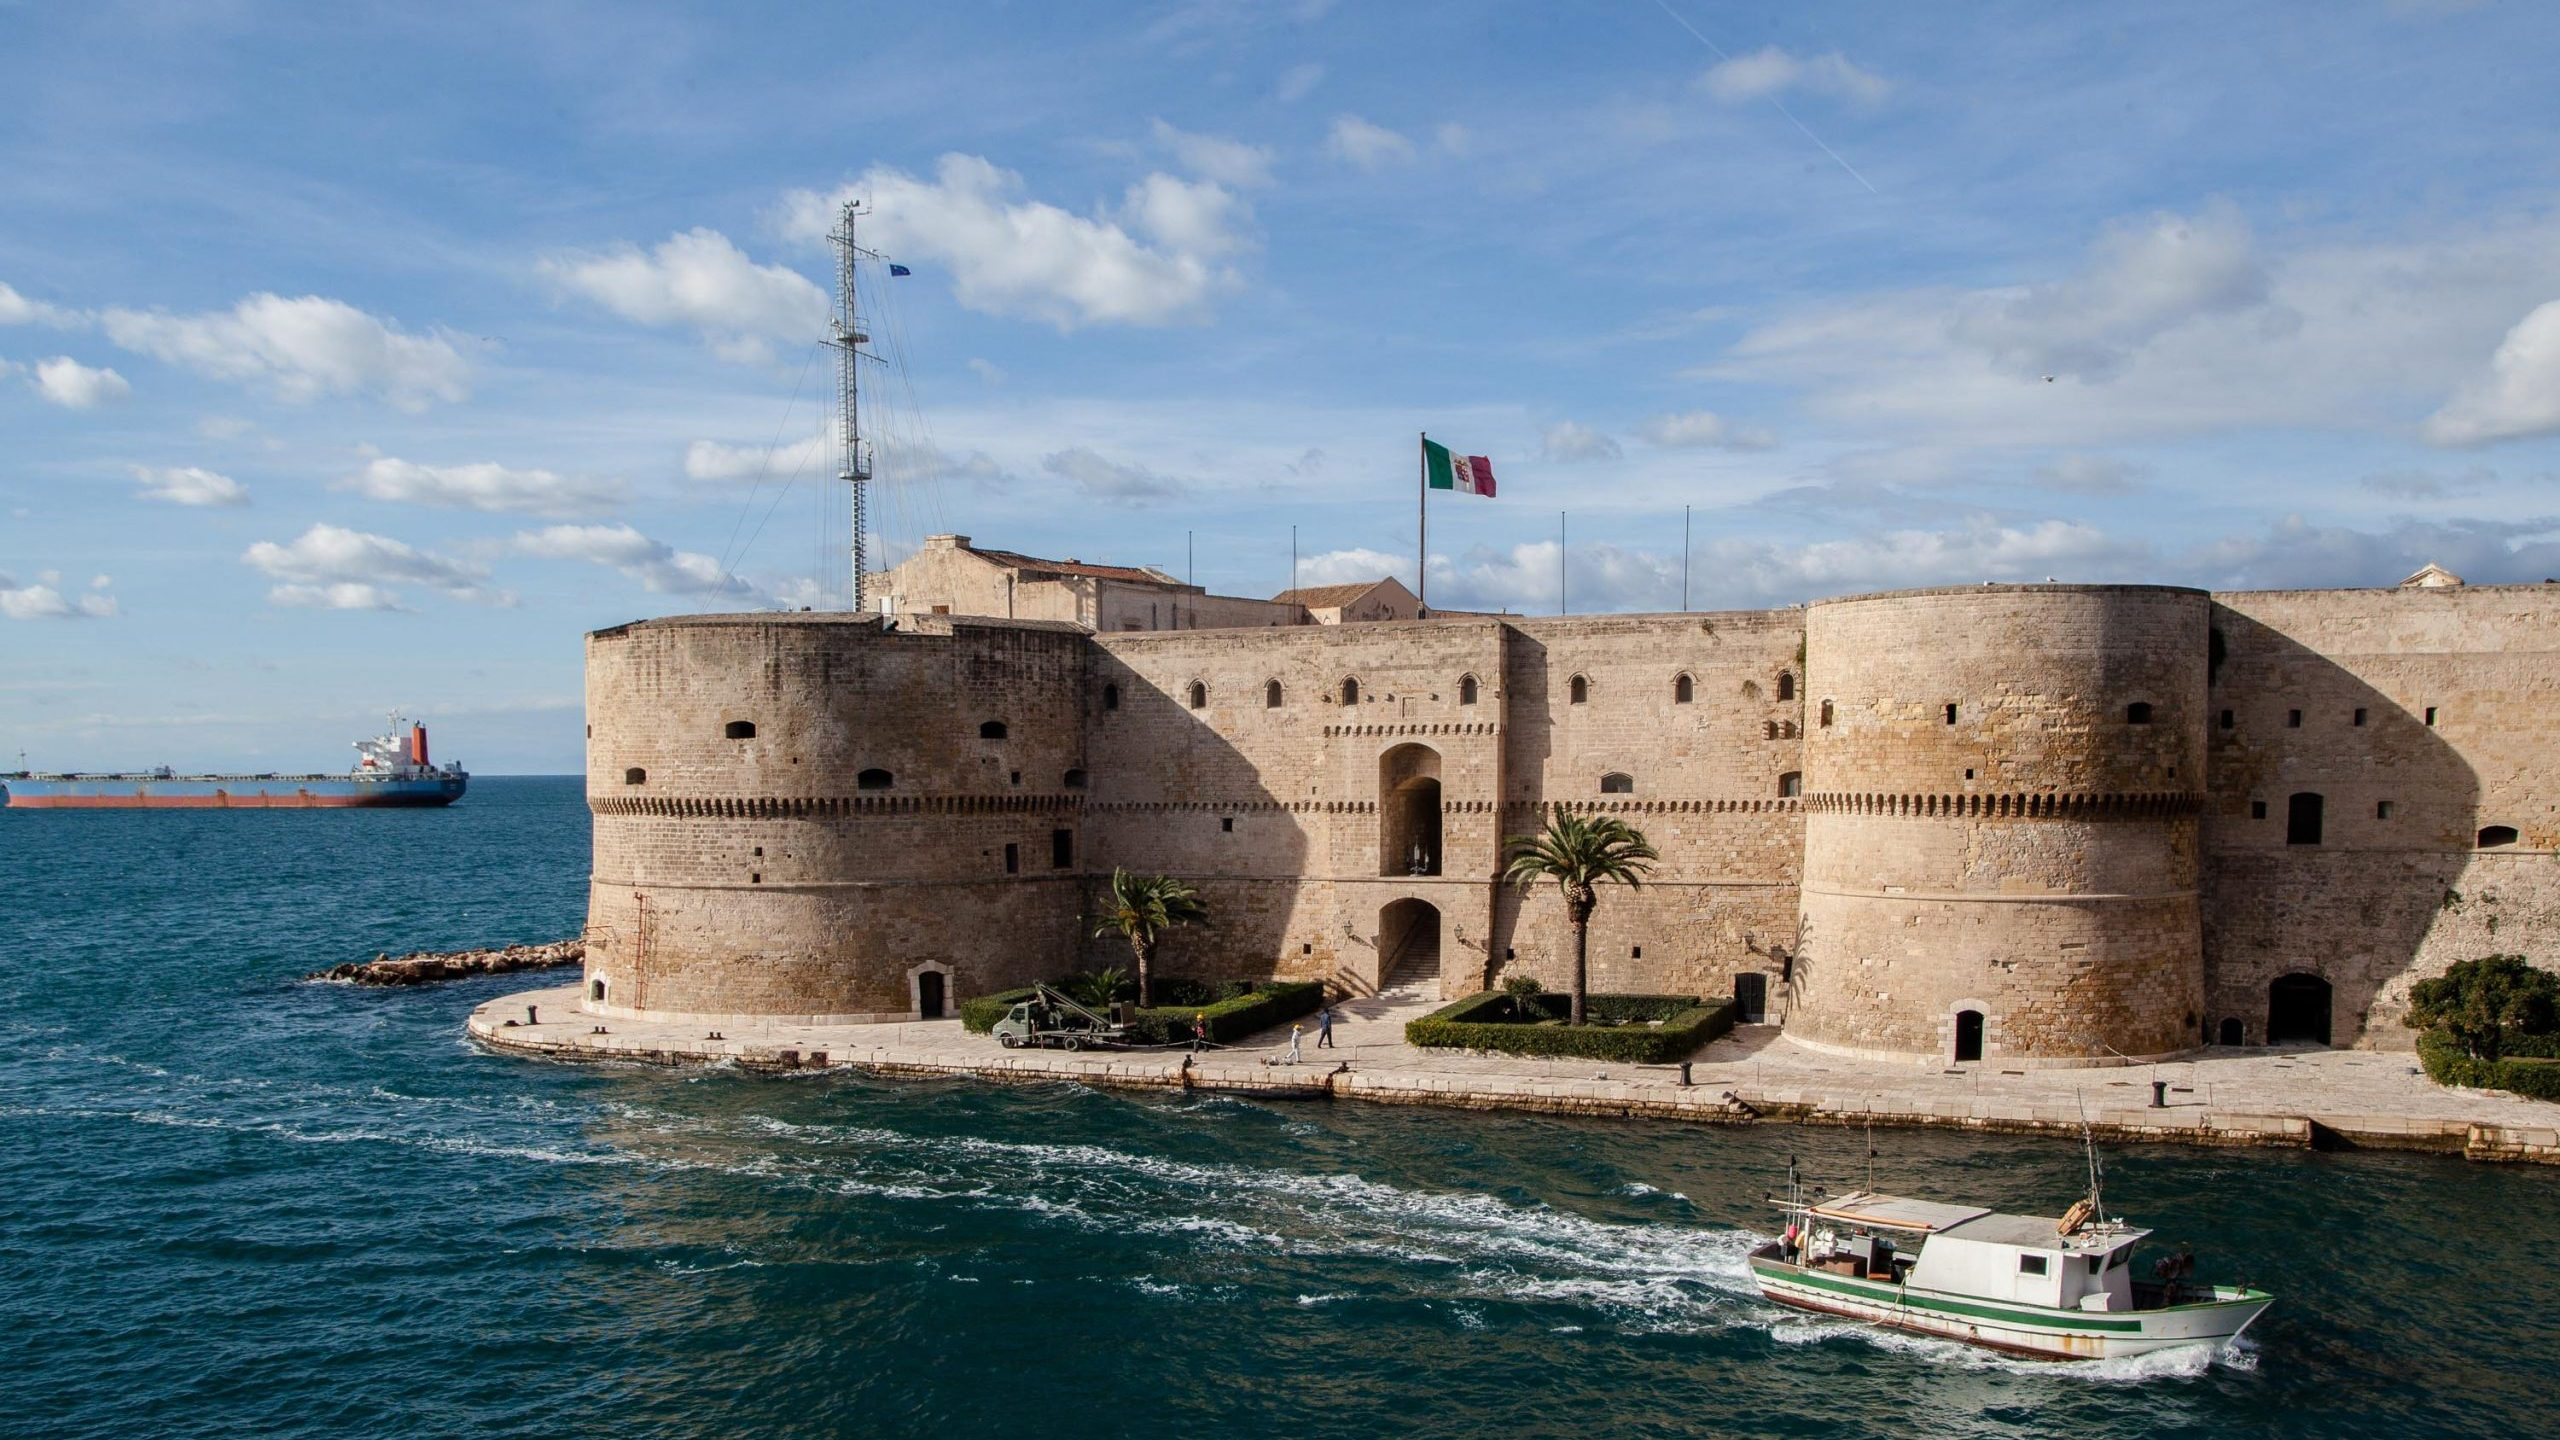 The Aragonese Castle of Taranto, Italy appears in this photo taken Nov. 29, 2017. (Credit: Paolo Manzo/NurPhoto via Getty Images)